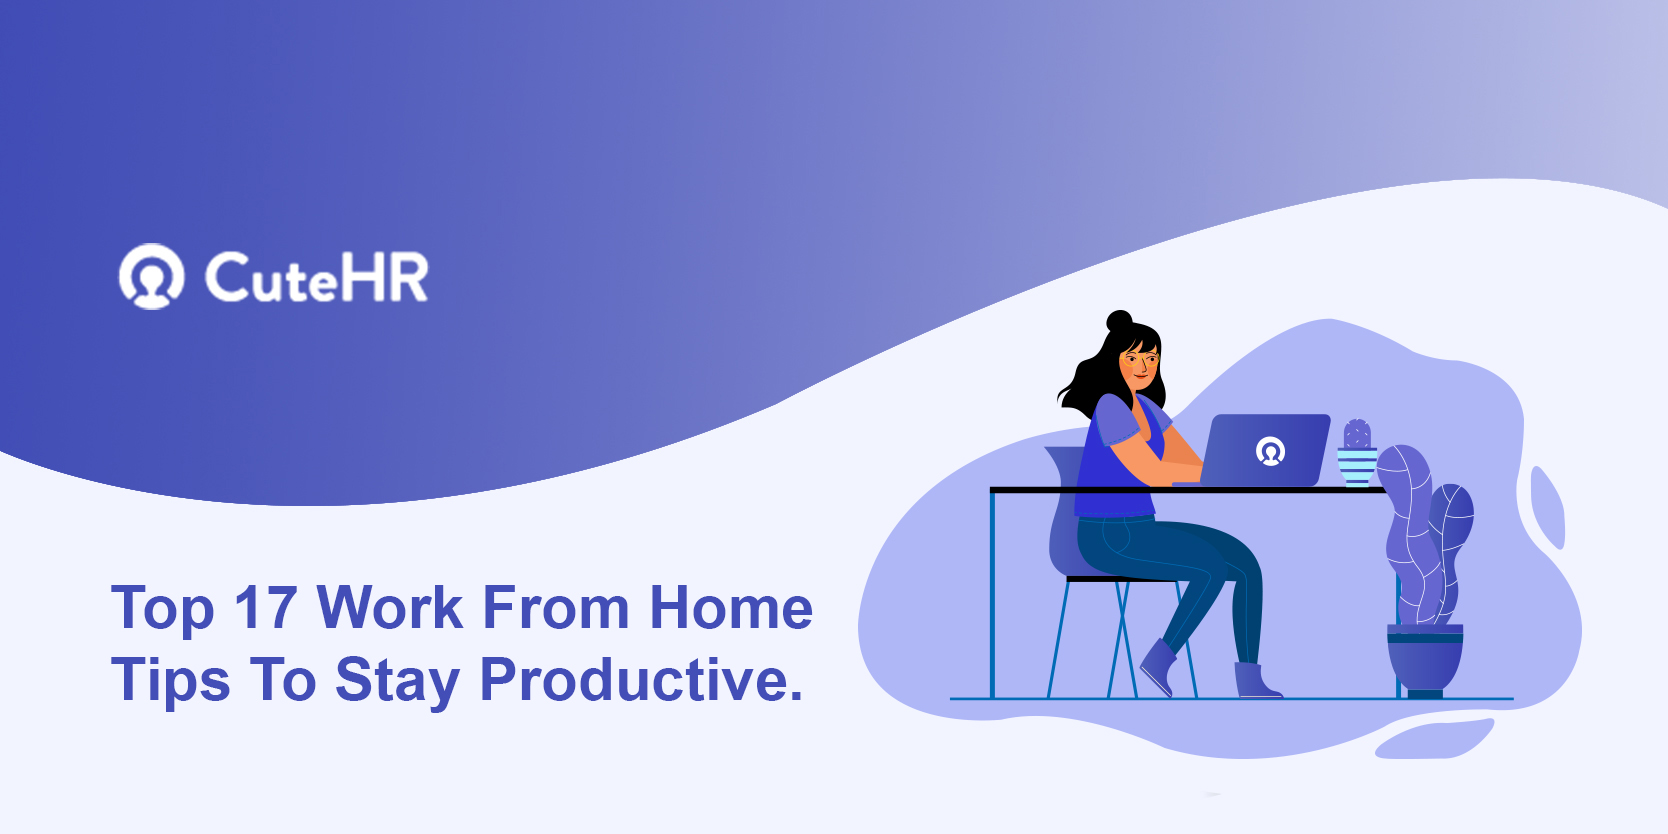 Top 17 Work From Home Tips To Stay Productive